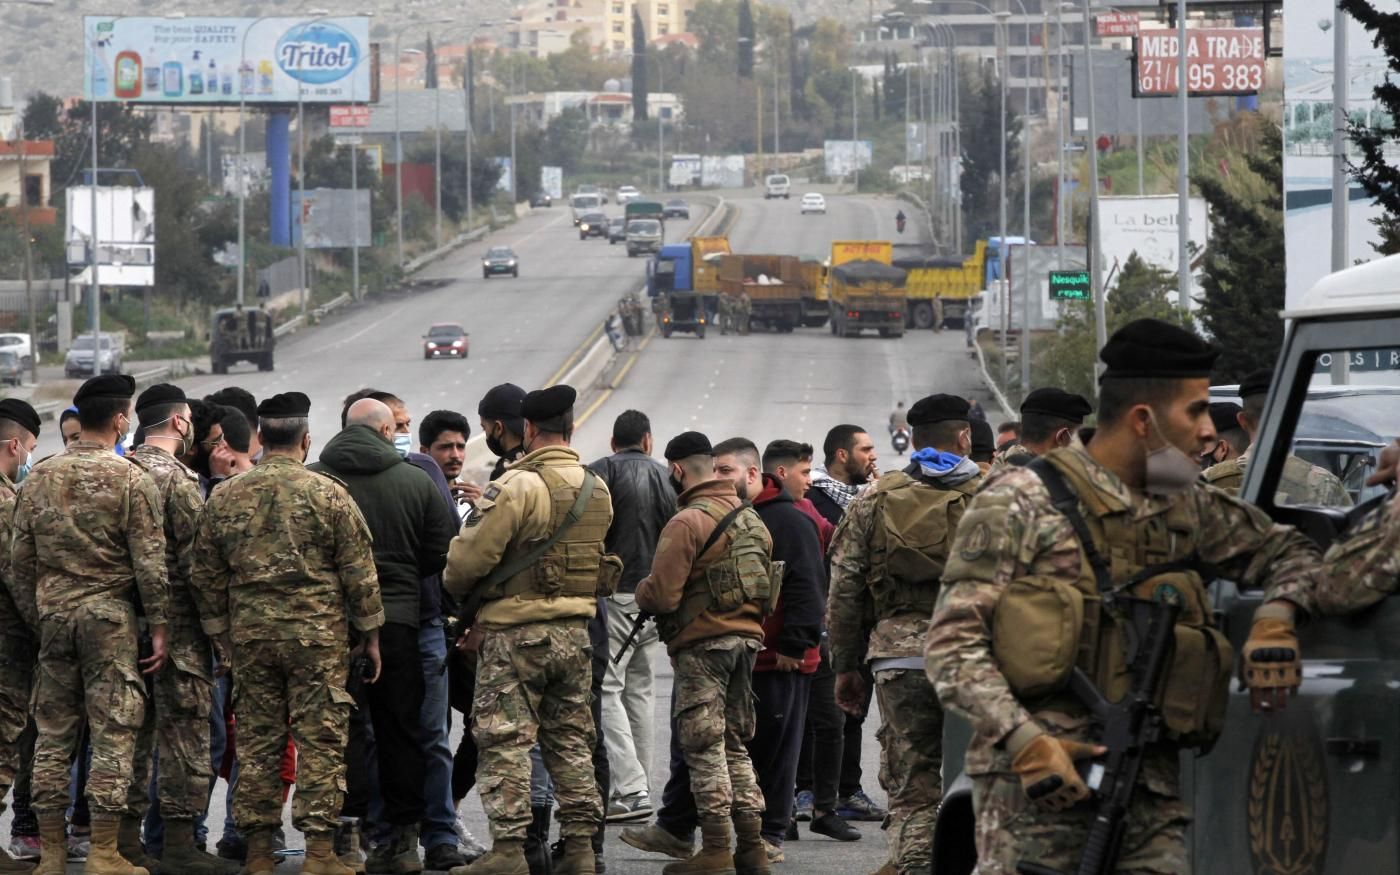 Lebanese security forces try to open a road blocked protesters south of Beirut on 10 March 2021 (Mahmoud Zayyat/AFP)